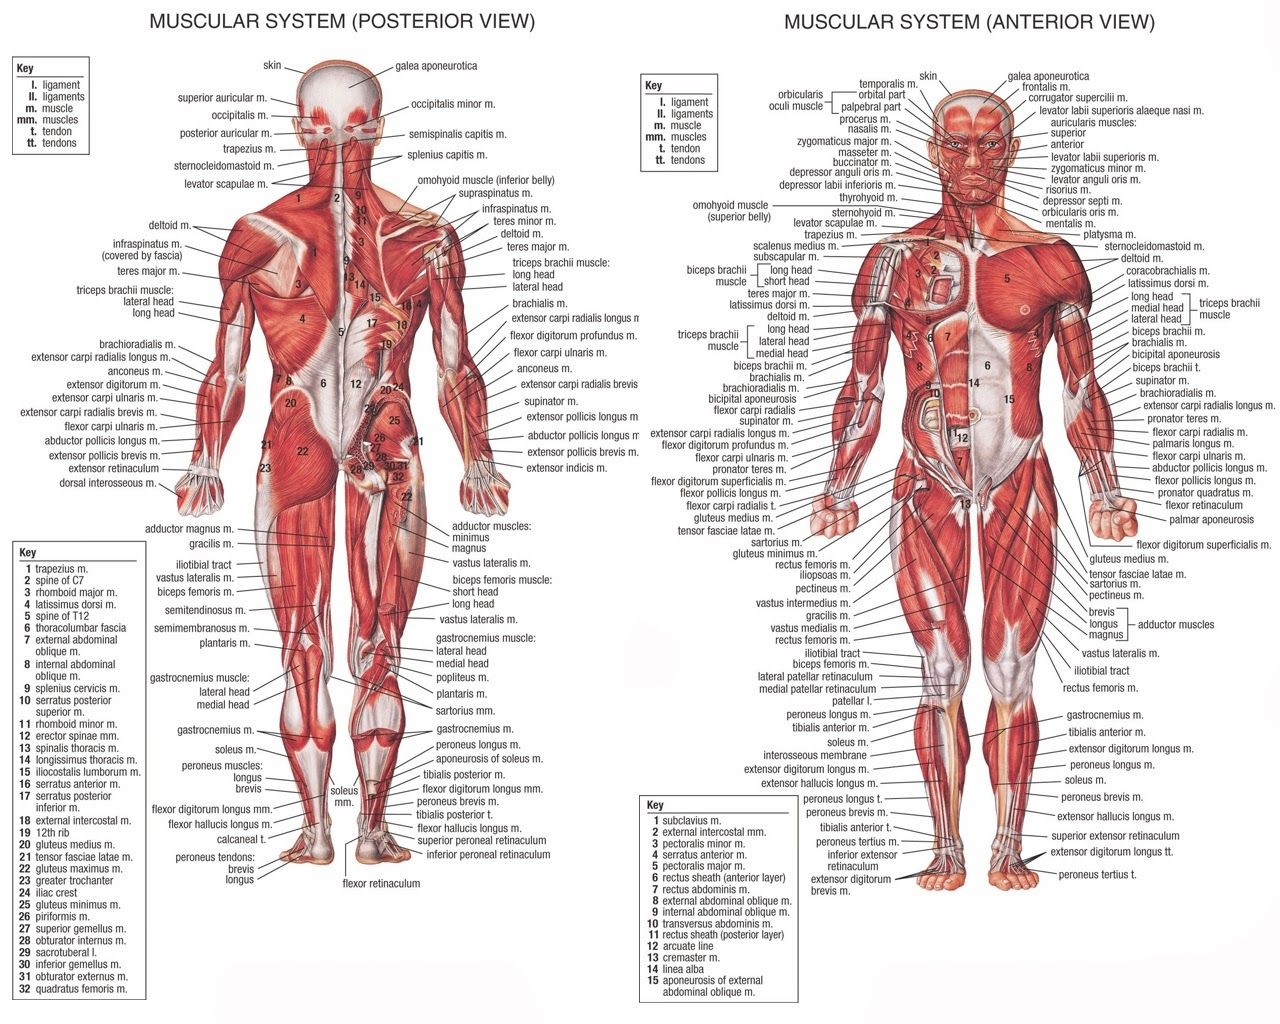 bones and muscles body chart tag human bones and muscles diagram, Muscles